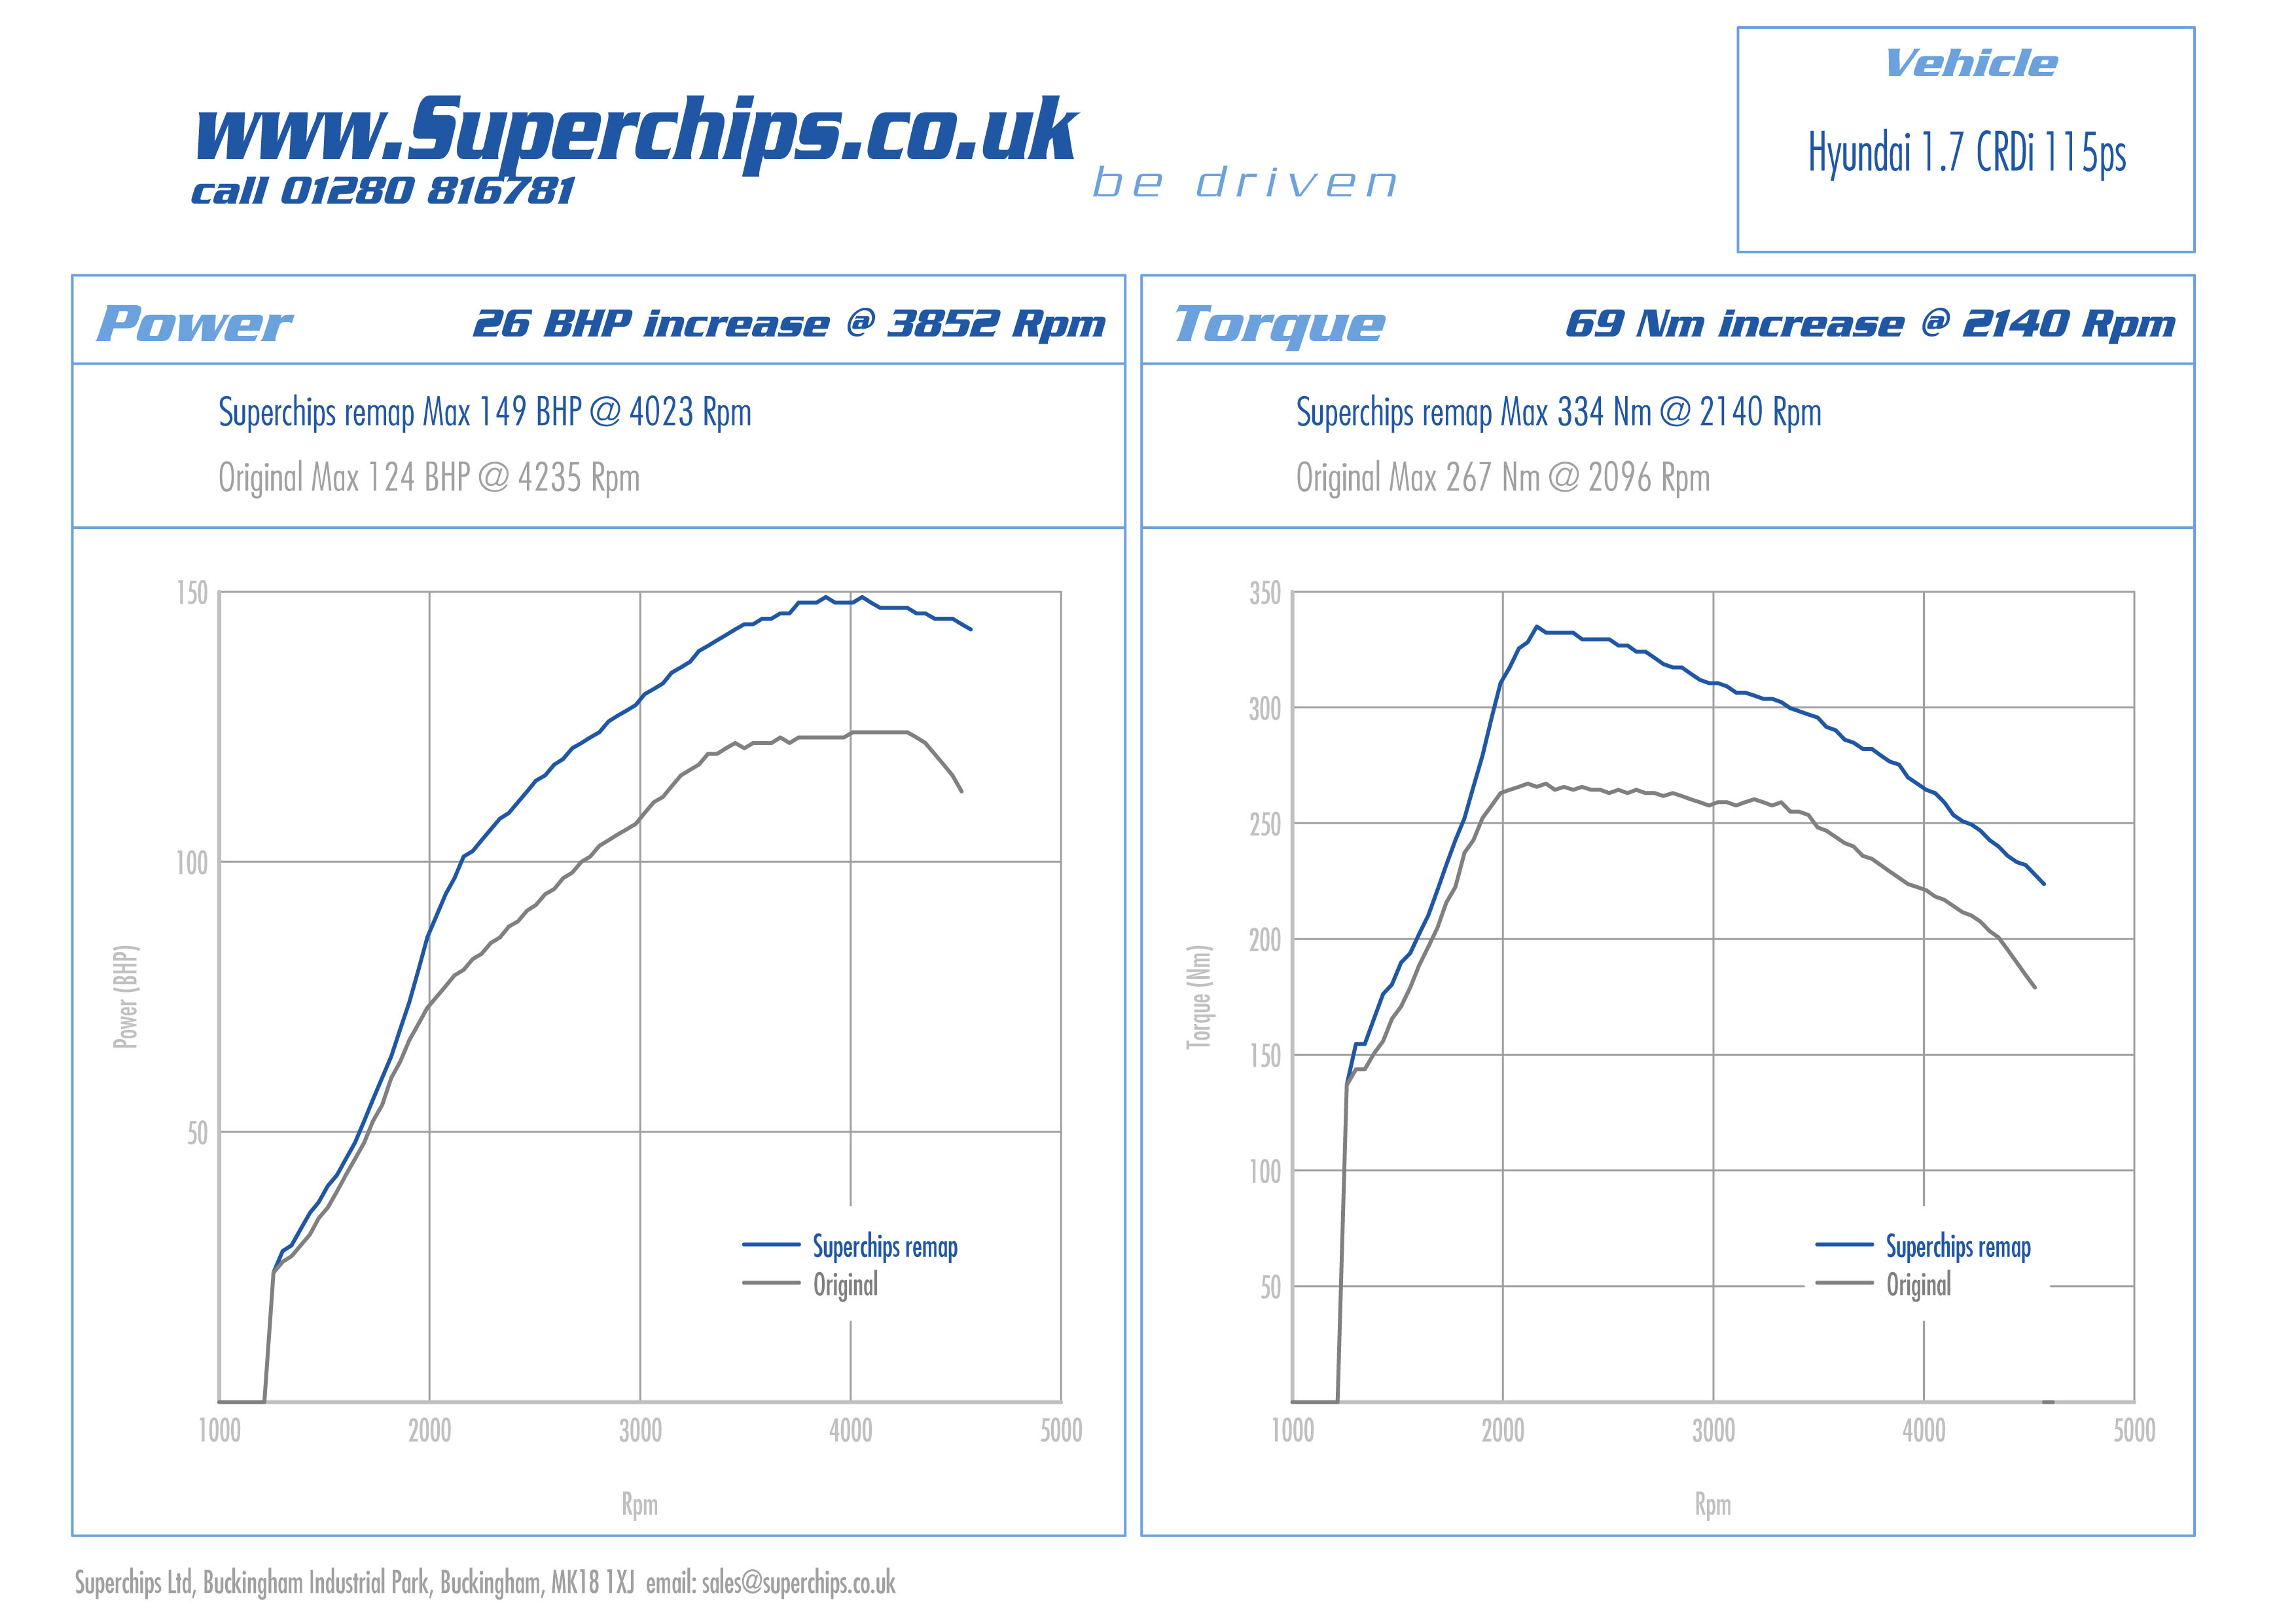 Boost The Power On Your Hyundai Ix35 1 7 Crdi With A Superchips Ecu Remap Superchips Uk Newsblog